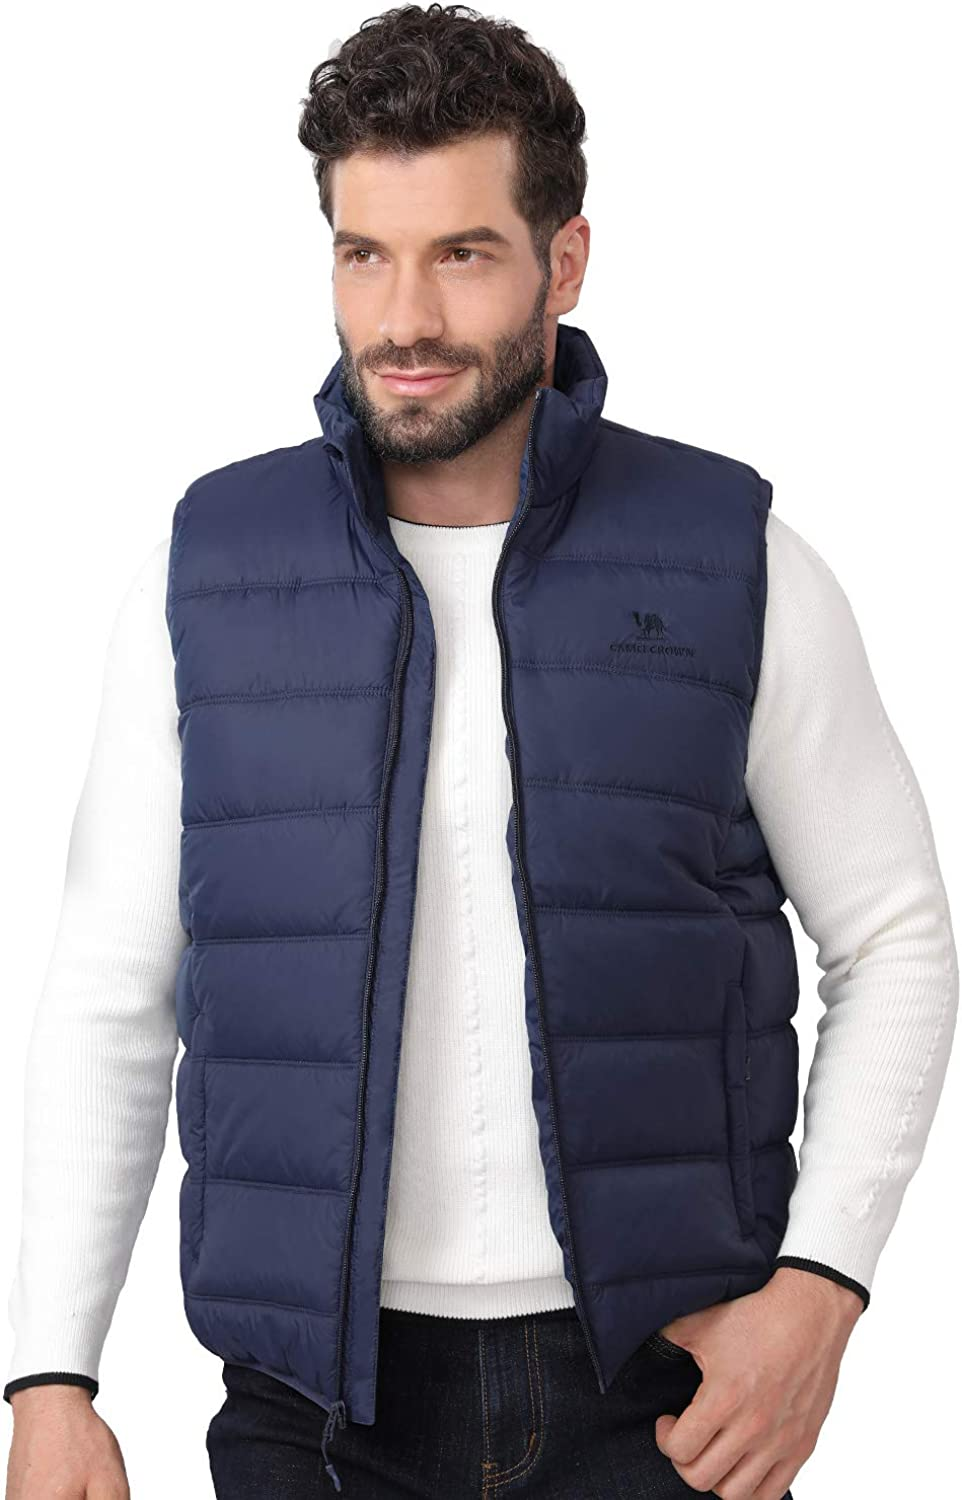 CAMEL CROWN Puffer Vest Men Quilted Winter Padded Sleeveless Jackets Gilet for Casual Work Travel Outdoor